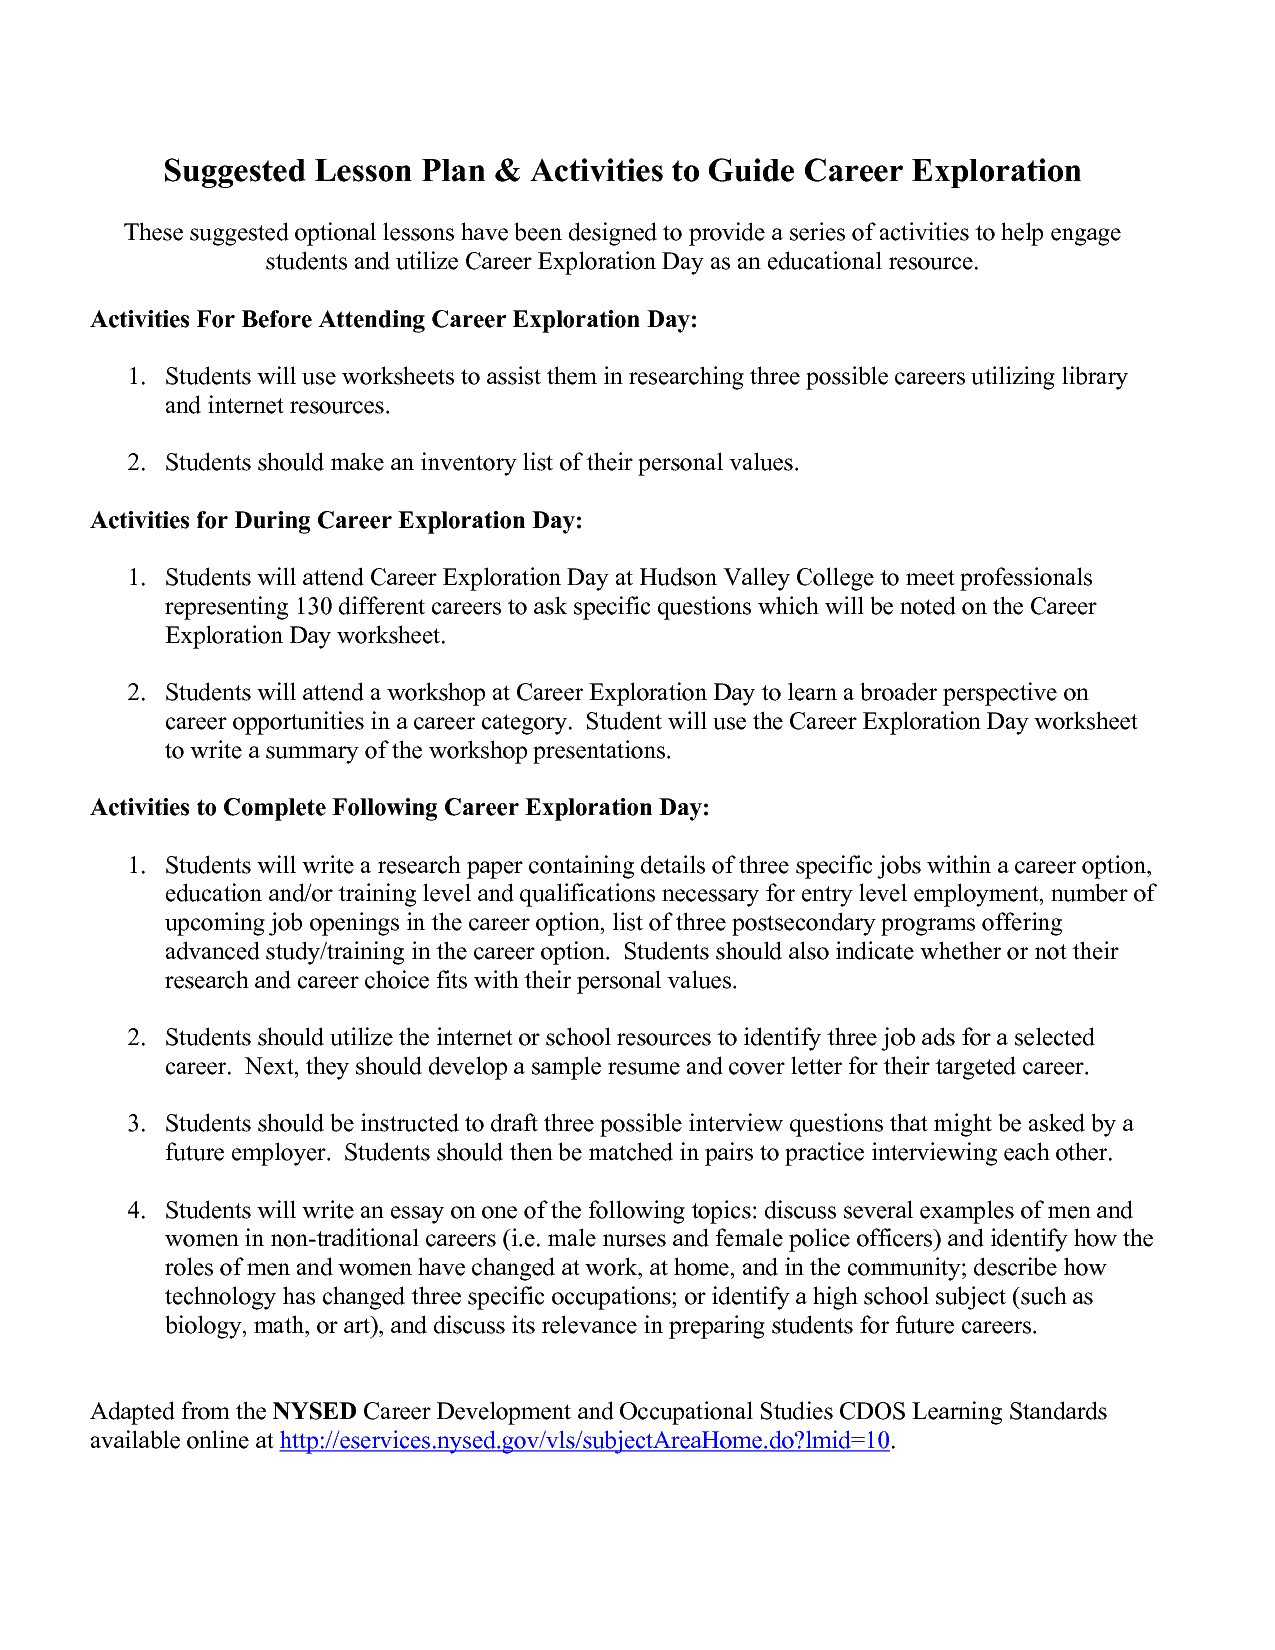 020 Research Paper Career Exploration Example Worksheets 100489 Unique Full